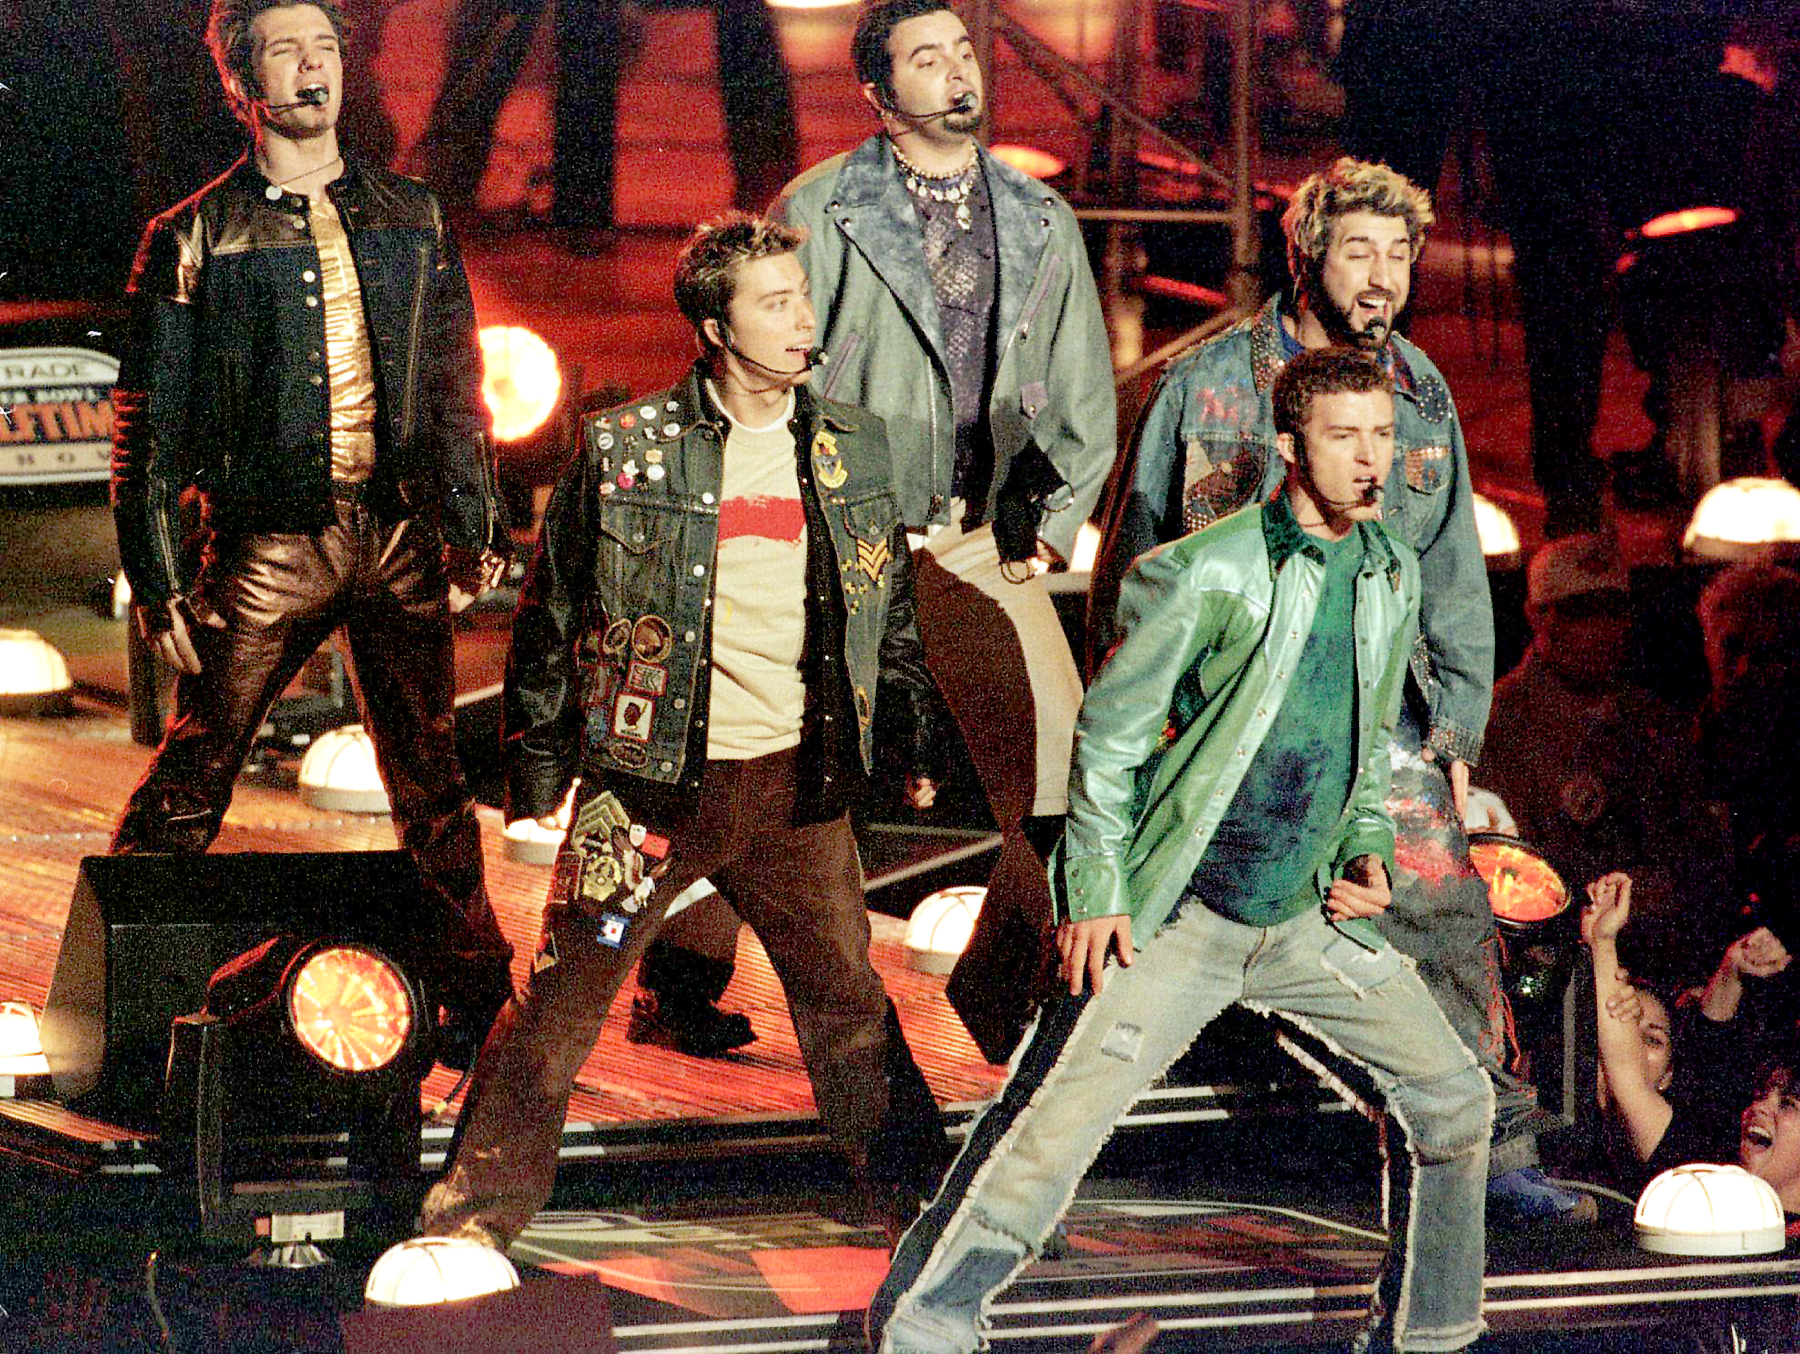 Who should join Justin Timberlake on the Super Bowl stage?